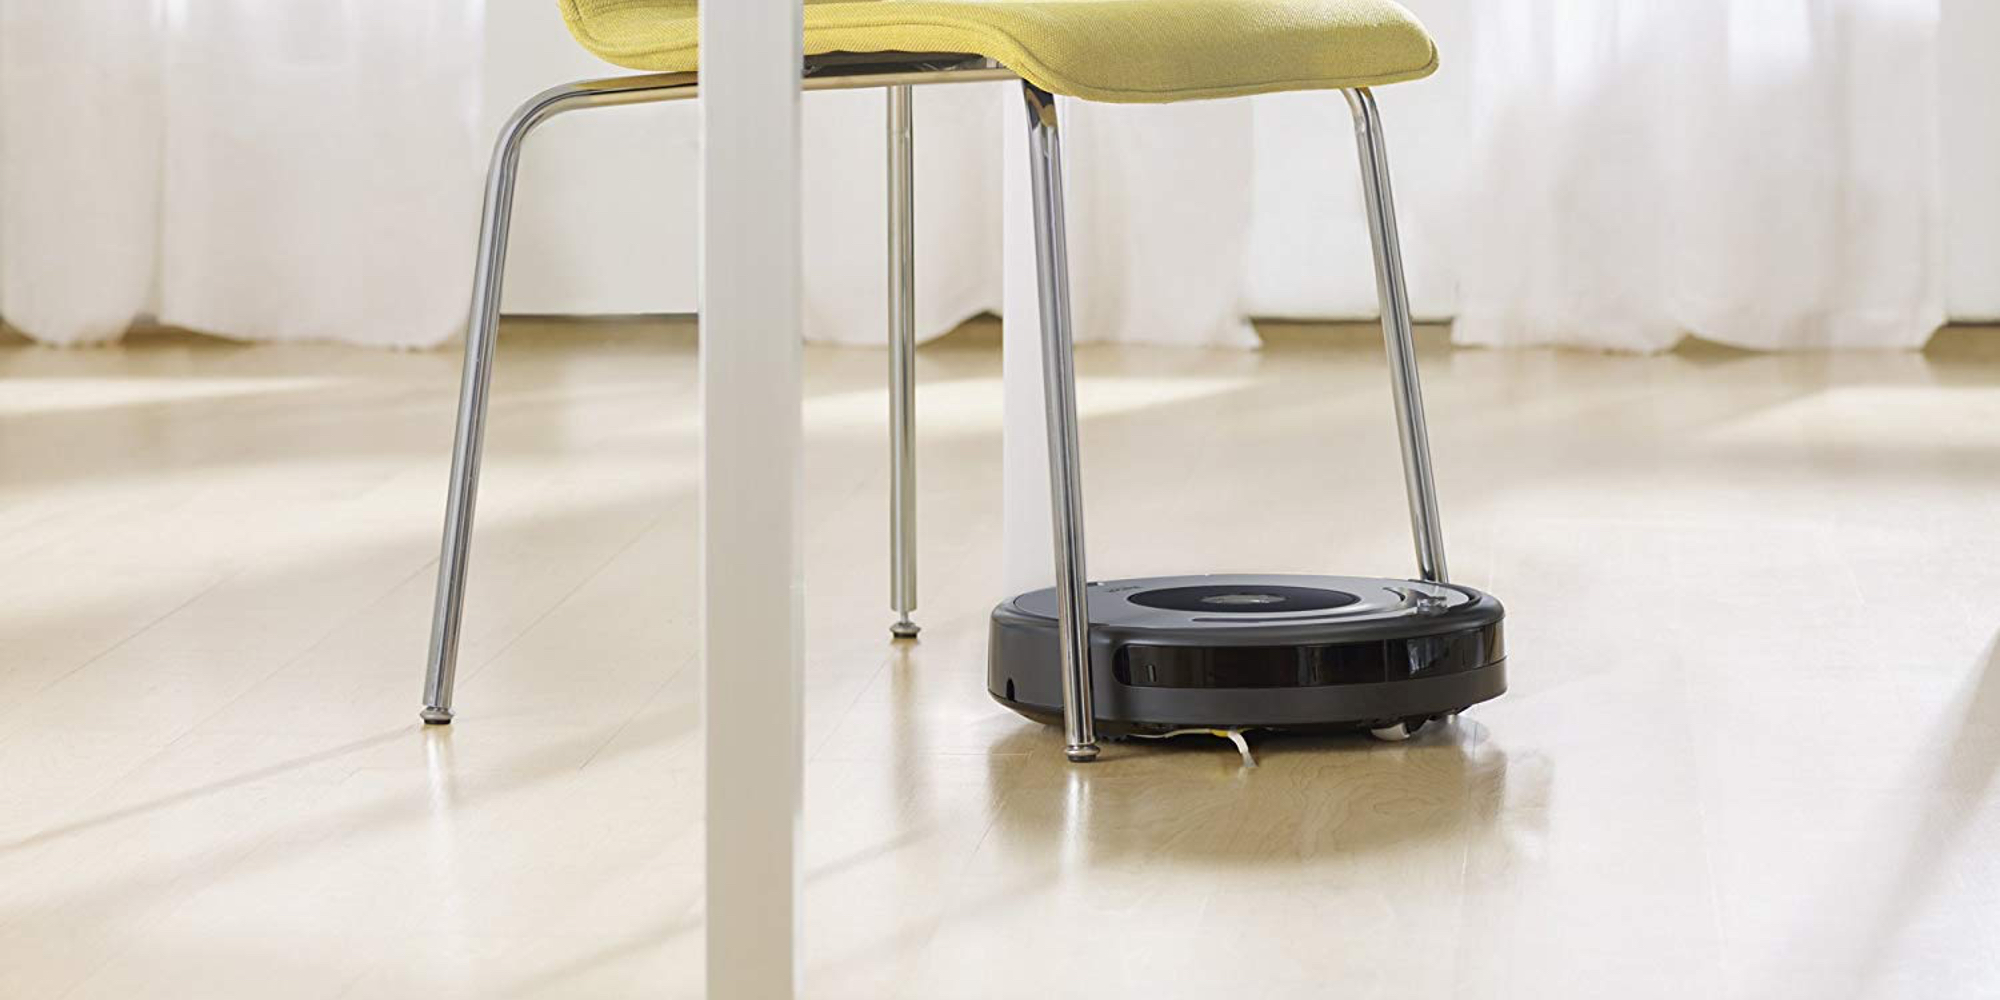 Tired of vacuuming? Let a robot clean for you w/ these one-day only deals at $240